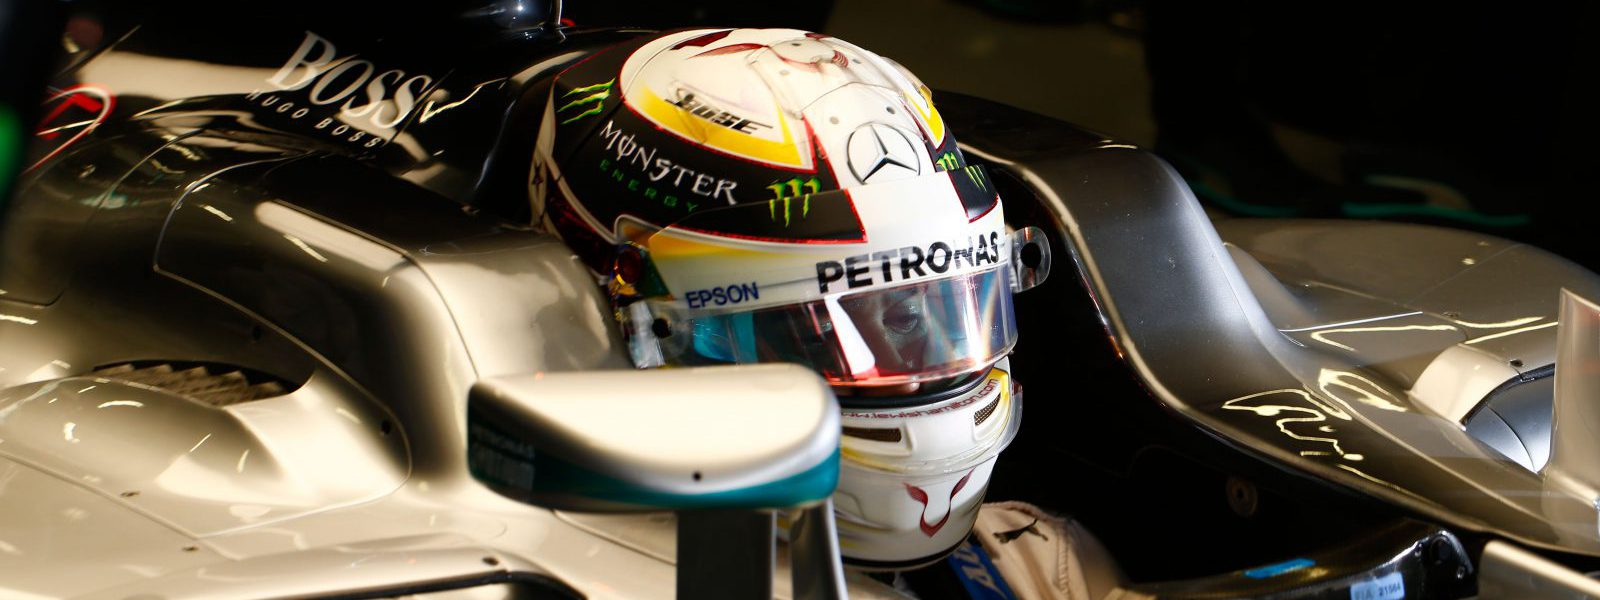 Motorsports: FIA Formula One World Championship 2016, Grand Prix of Mexico,  #44 Lewis Hamilton (GBR, Mercedes AMG Petronas Formula One Team),  *** Local Caption *** +++ www.hoch-zwei.net +++ copyright: HOCH ZWEI +++